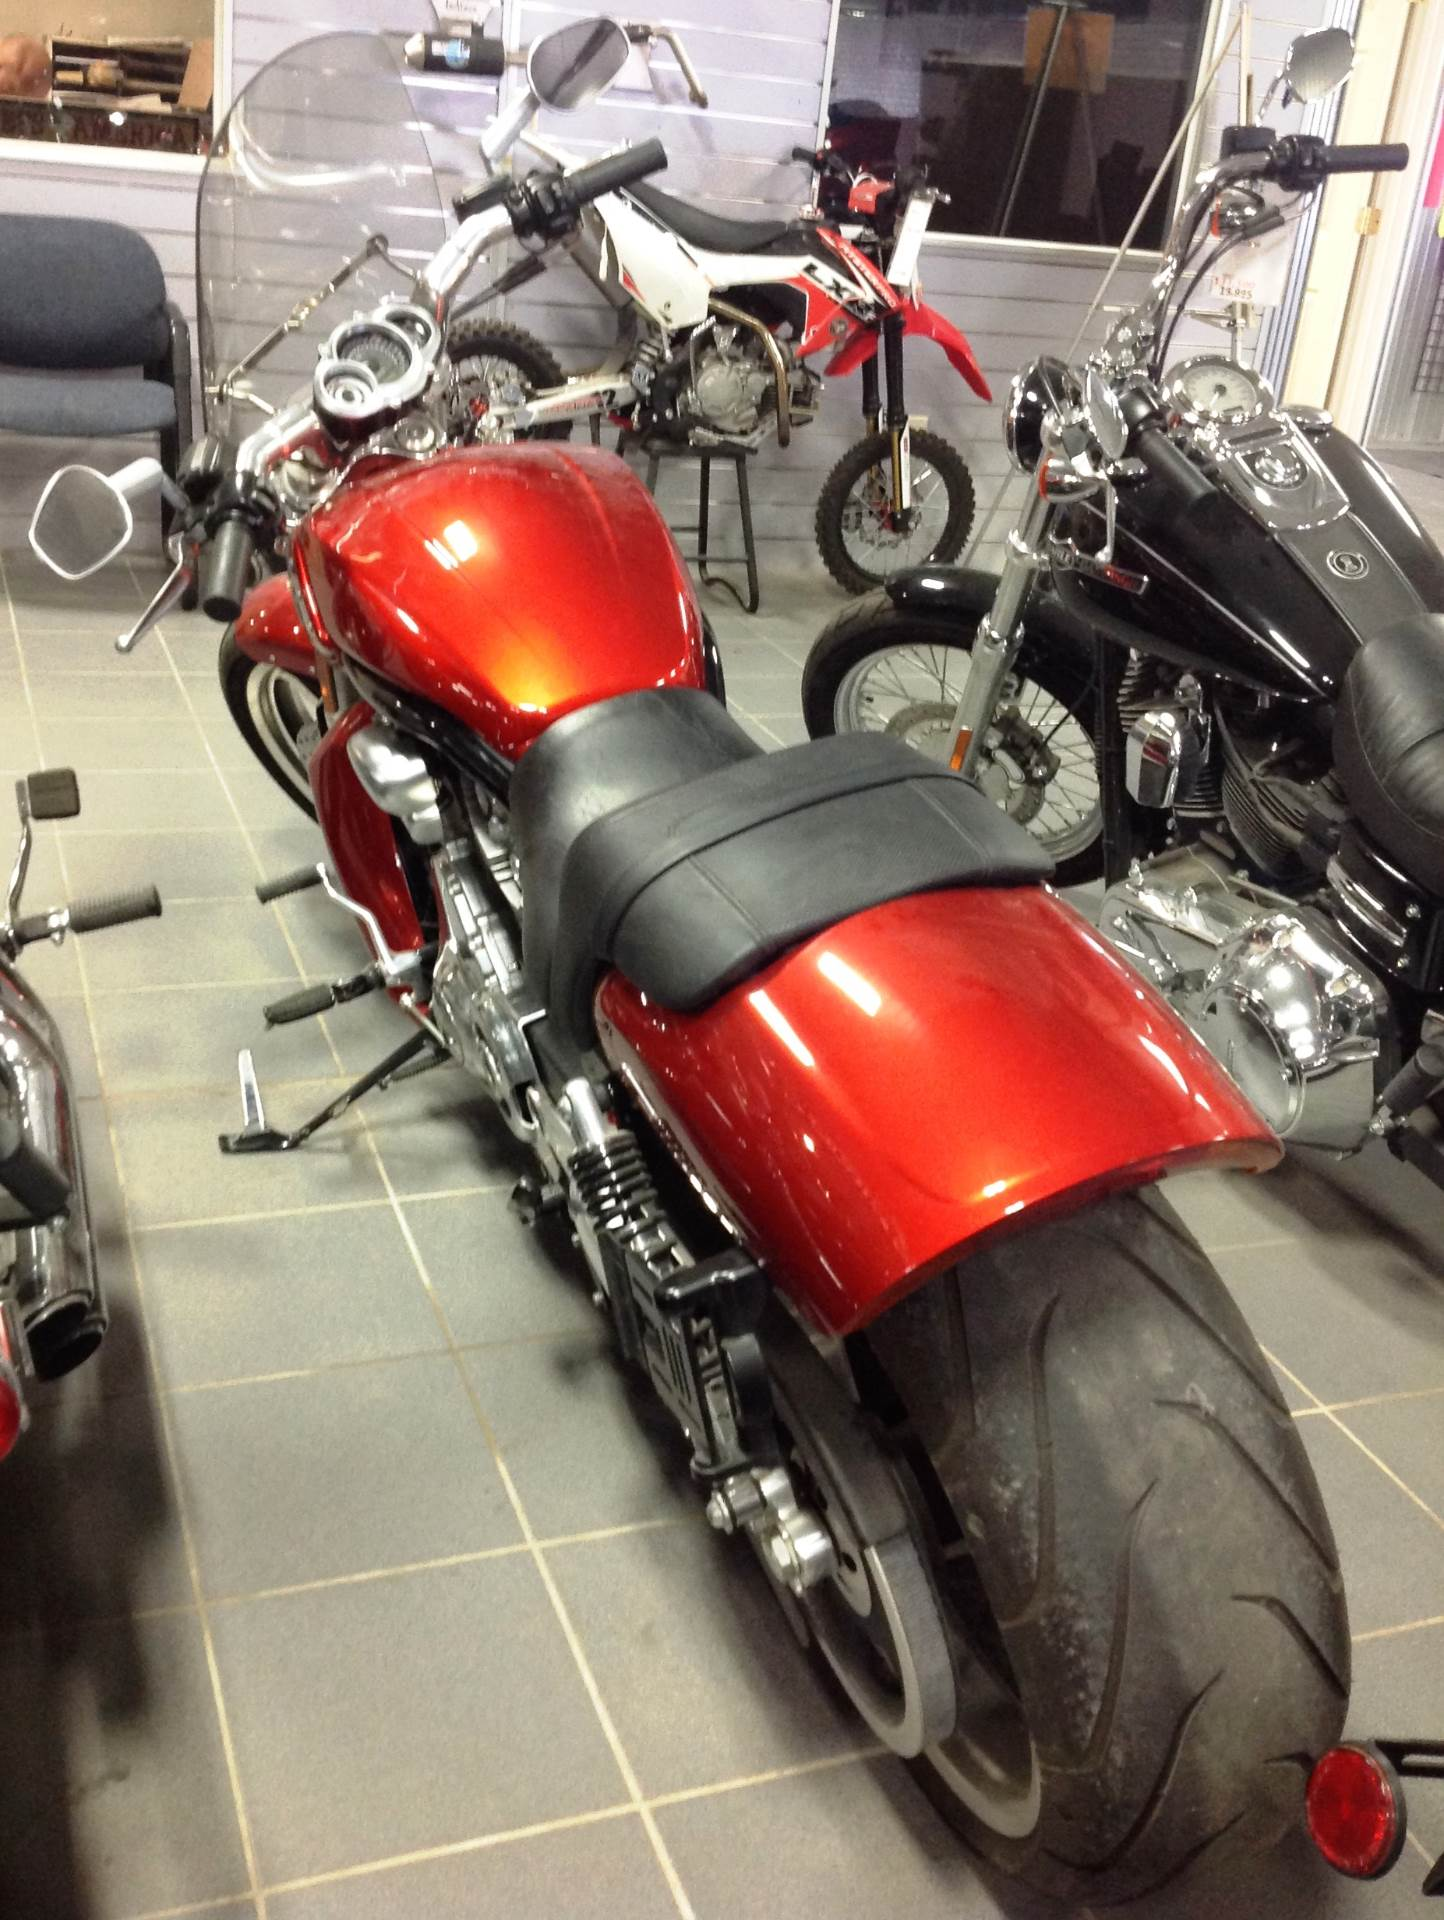 used 2013 harley davidson v rod muscle motorcycles in ottumwa ia